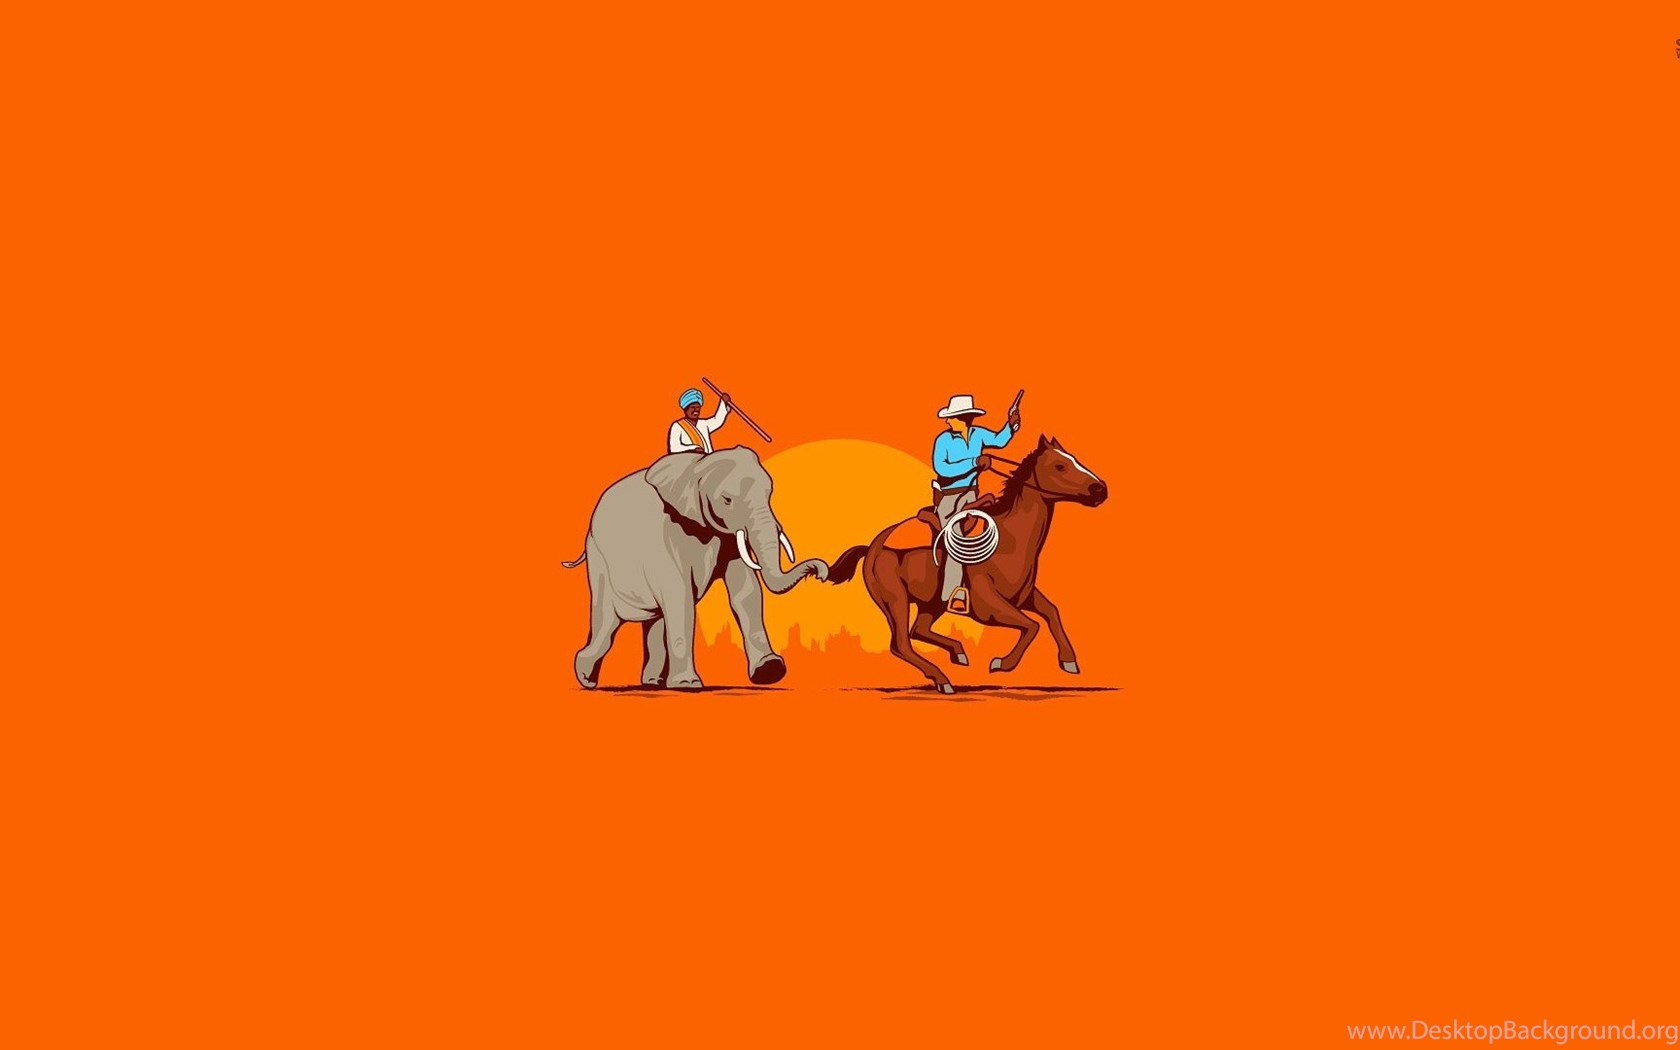 Cowboy And Indian Wallpapers Funny Wallpapers Desktop Background